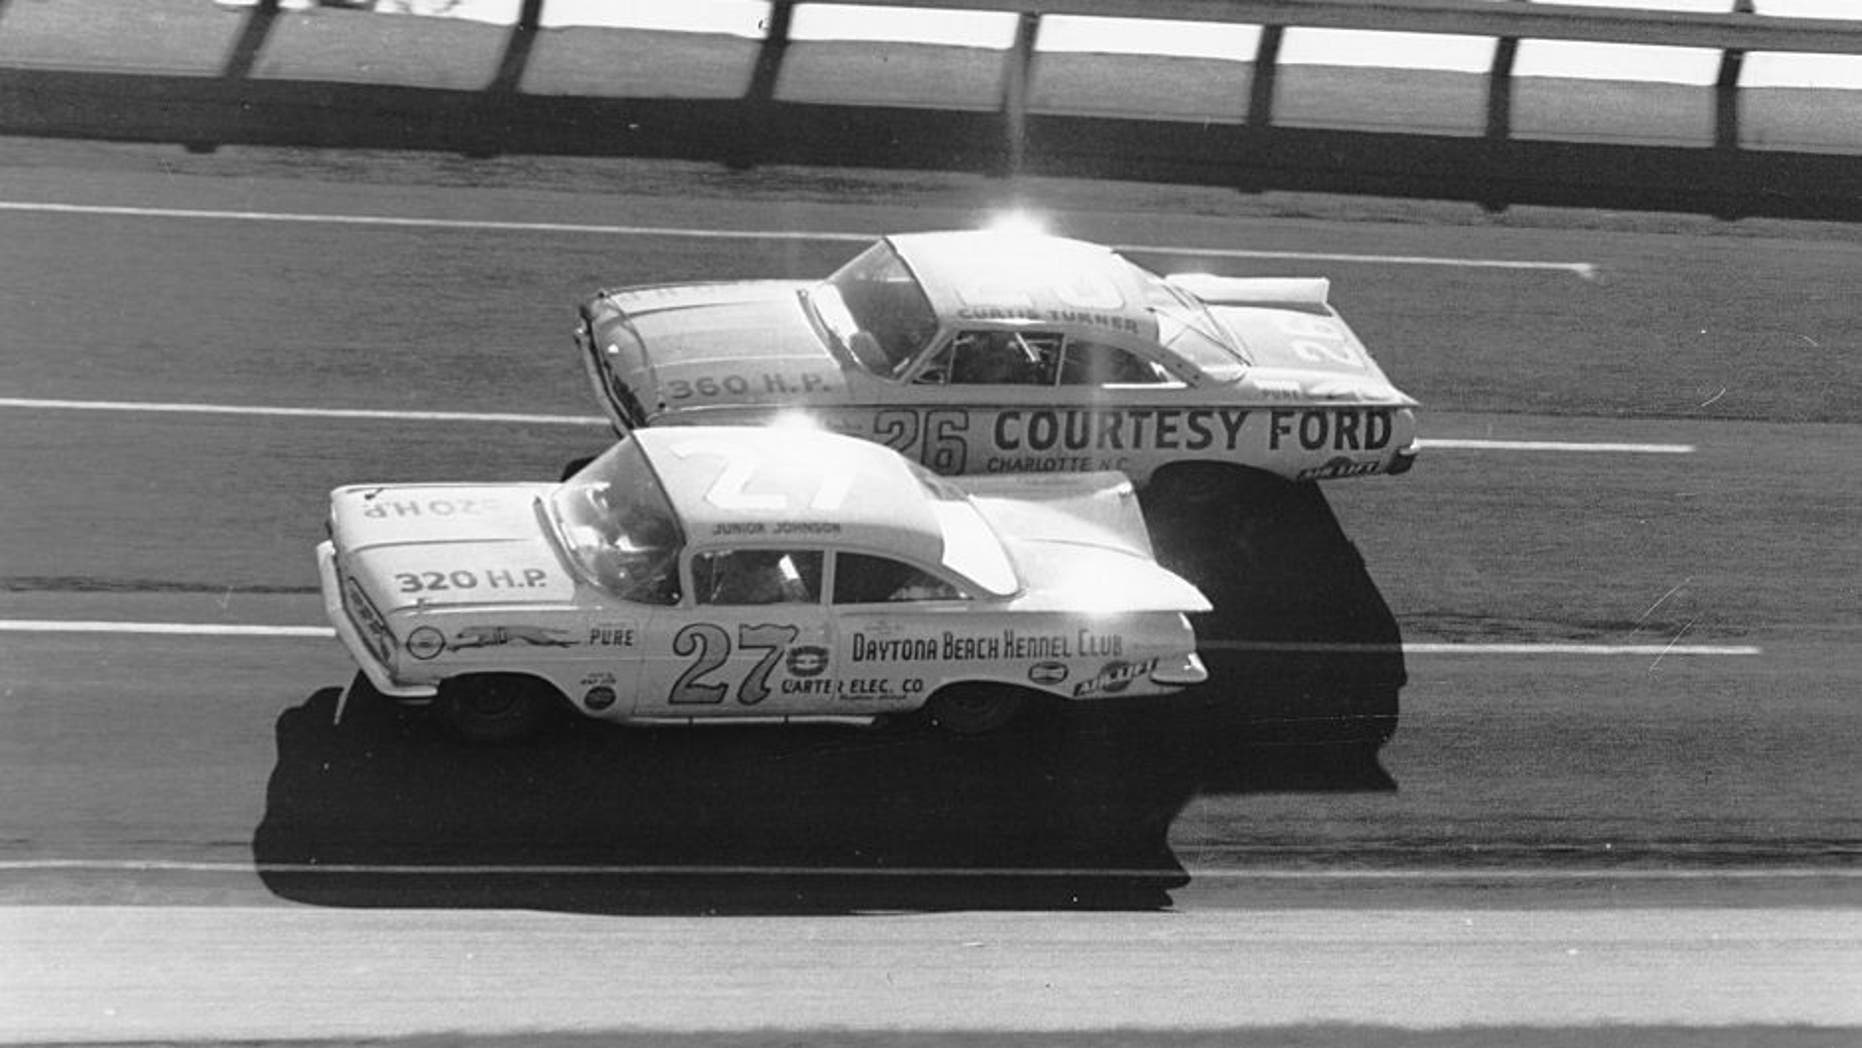 DAYTONA BEACH, FL - FEBRUARY 14: Eventual winner of the 1960 Daytona 500, Junior Johnson #27 ducks beneath Curtis Turner #26 who finished 7th during the Daytona 500 on February 14, 1960 at the Daytona International Speedway in Daytona Beach, Florida. There were so many wrecked and disabled cars following this event that NASCAR canceled the next two scheduled meets for fear of lack of participants. (Photo by ISC Archives via Getty Images)